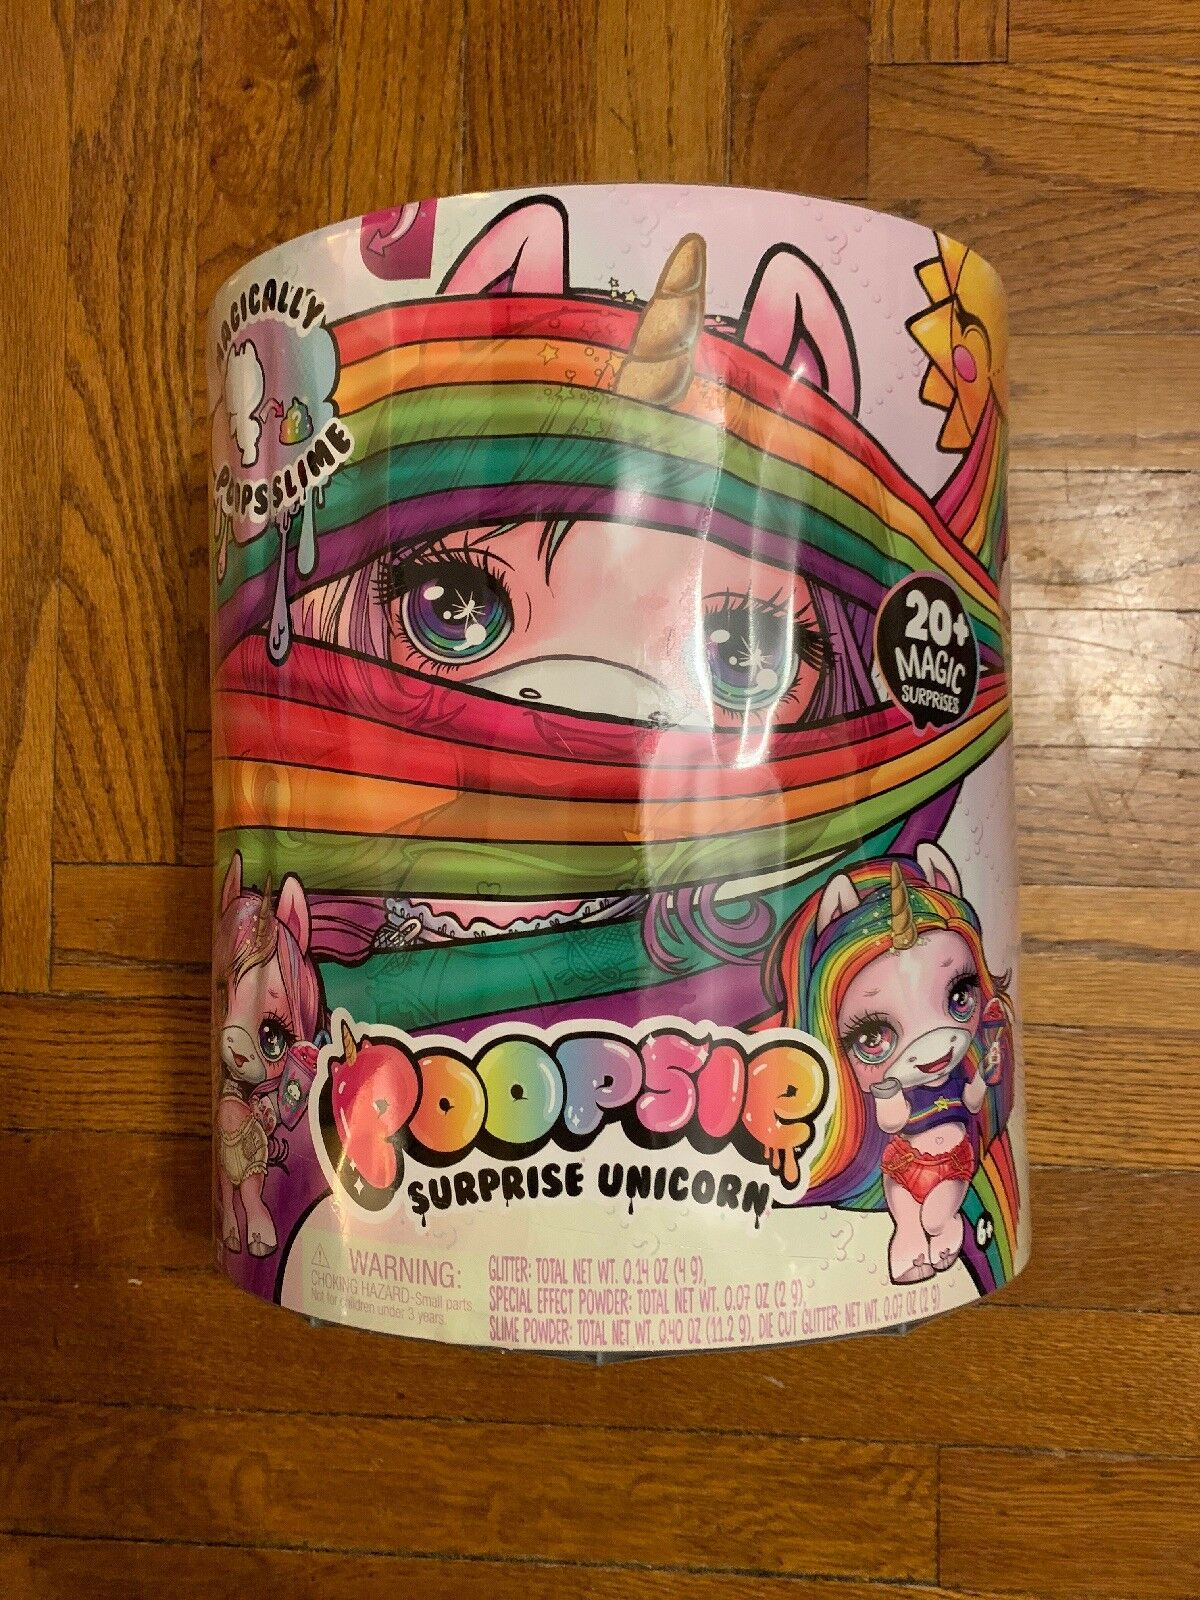 Proutie surprise Licorne 20+ Magie surprises selles Slime NEUF. SEALED